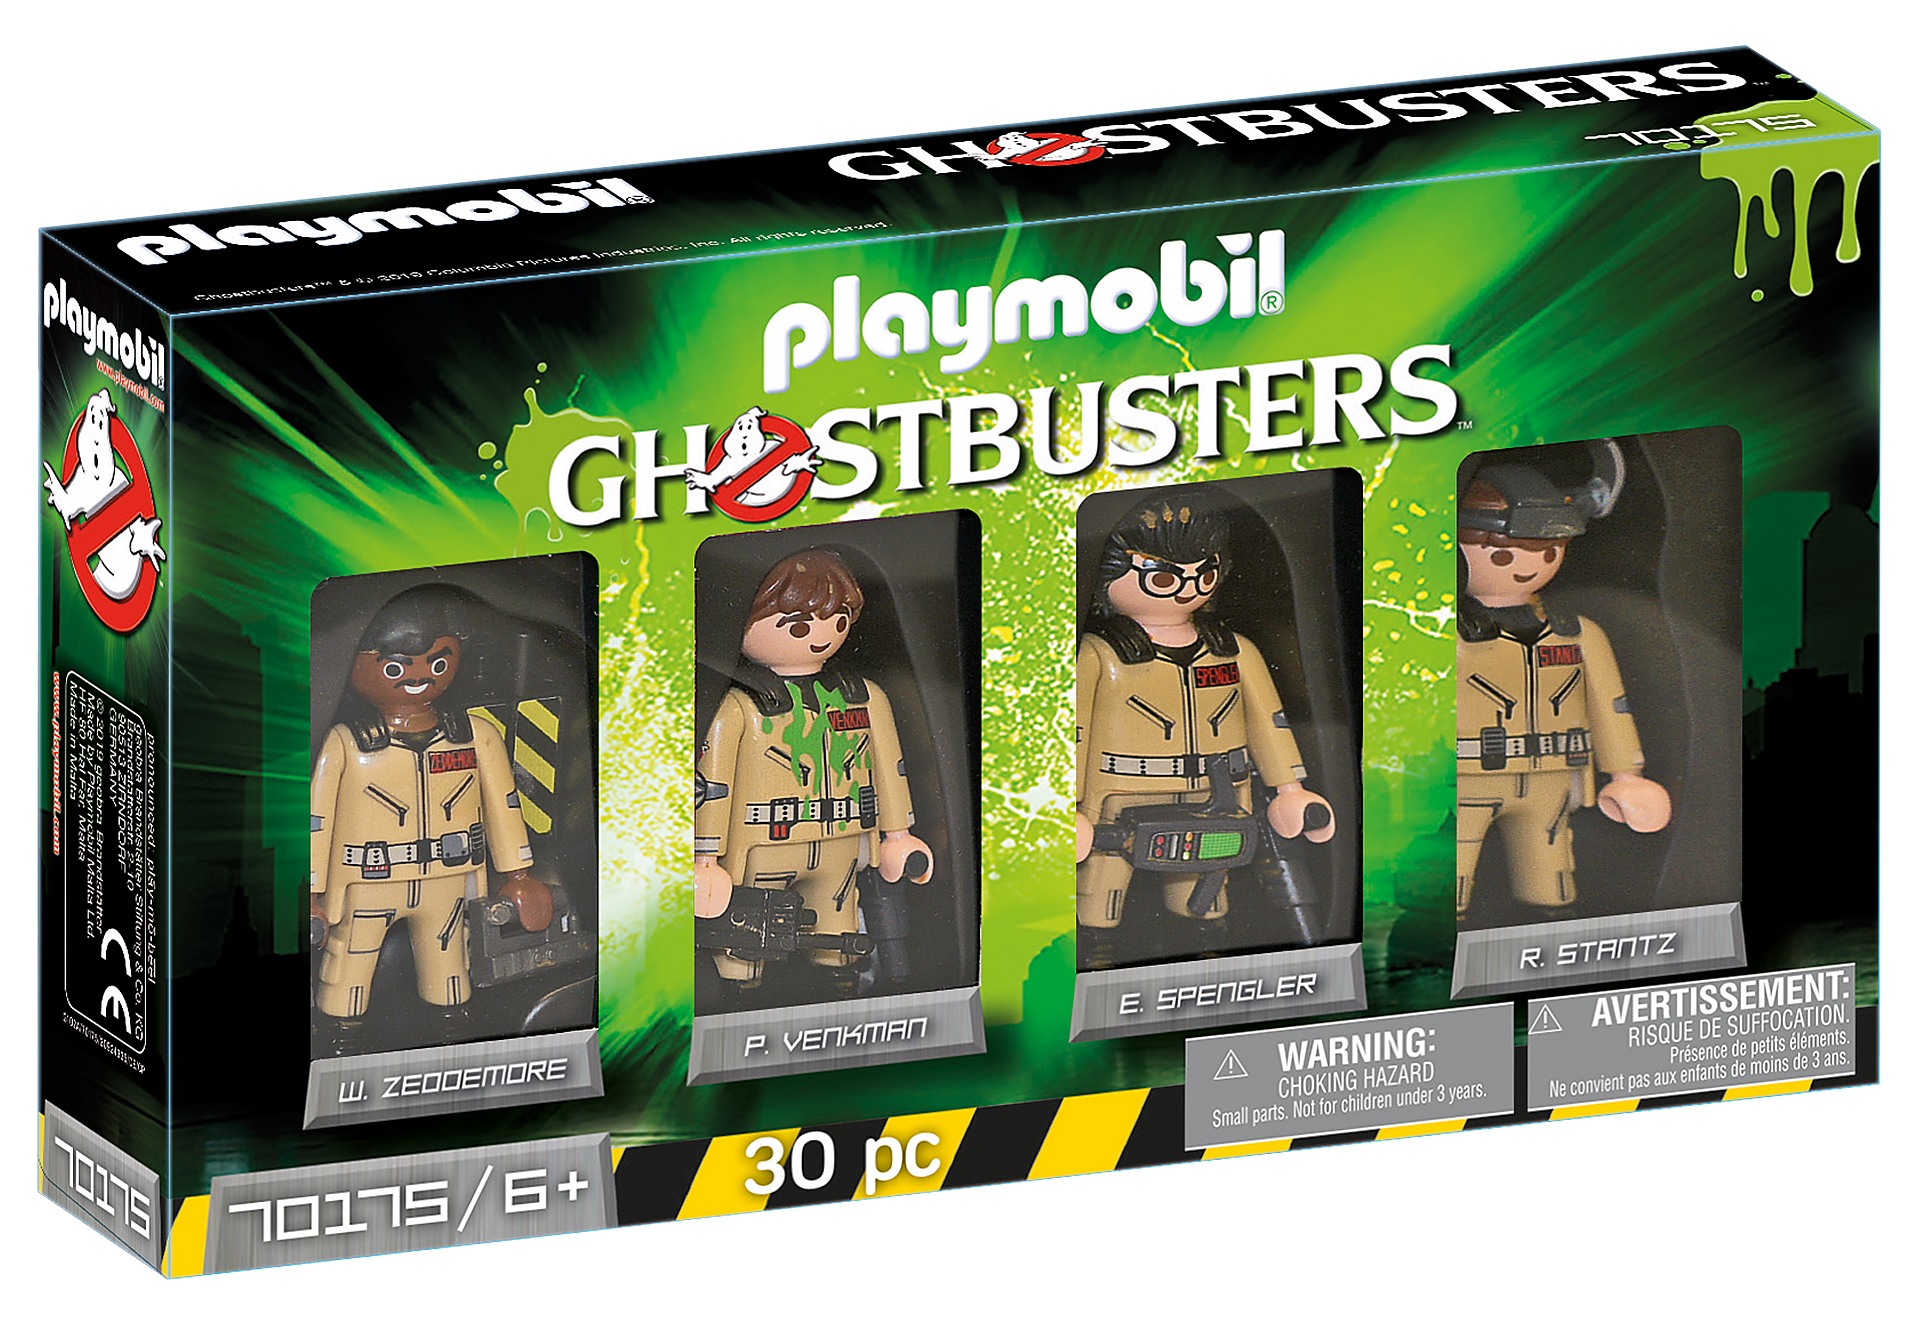 http://media.playmobil.com/i/playmobil/70175_product_box_front/Ghostbusters™ Collector's Set Ghostbusters